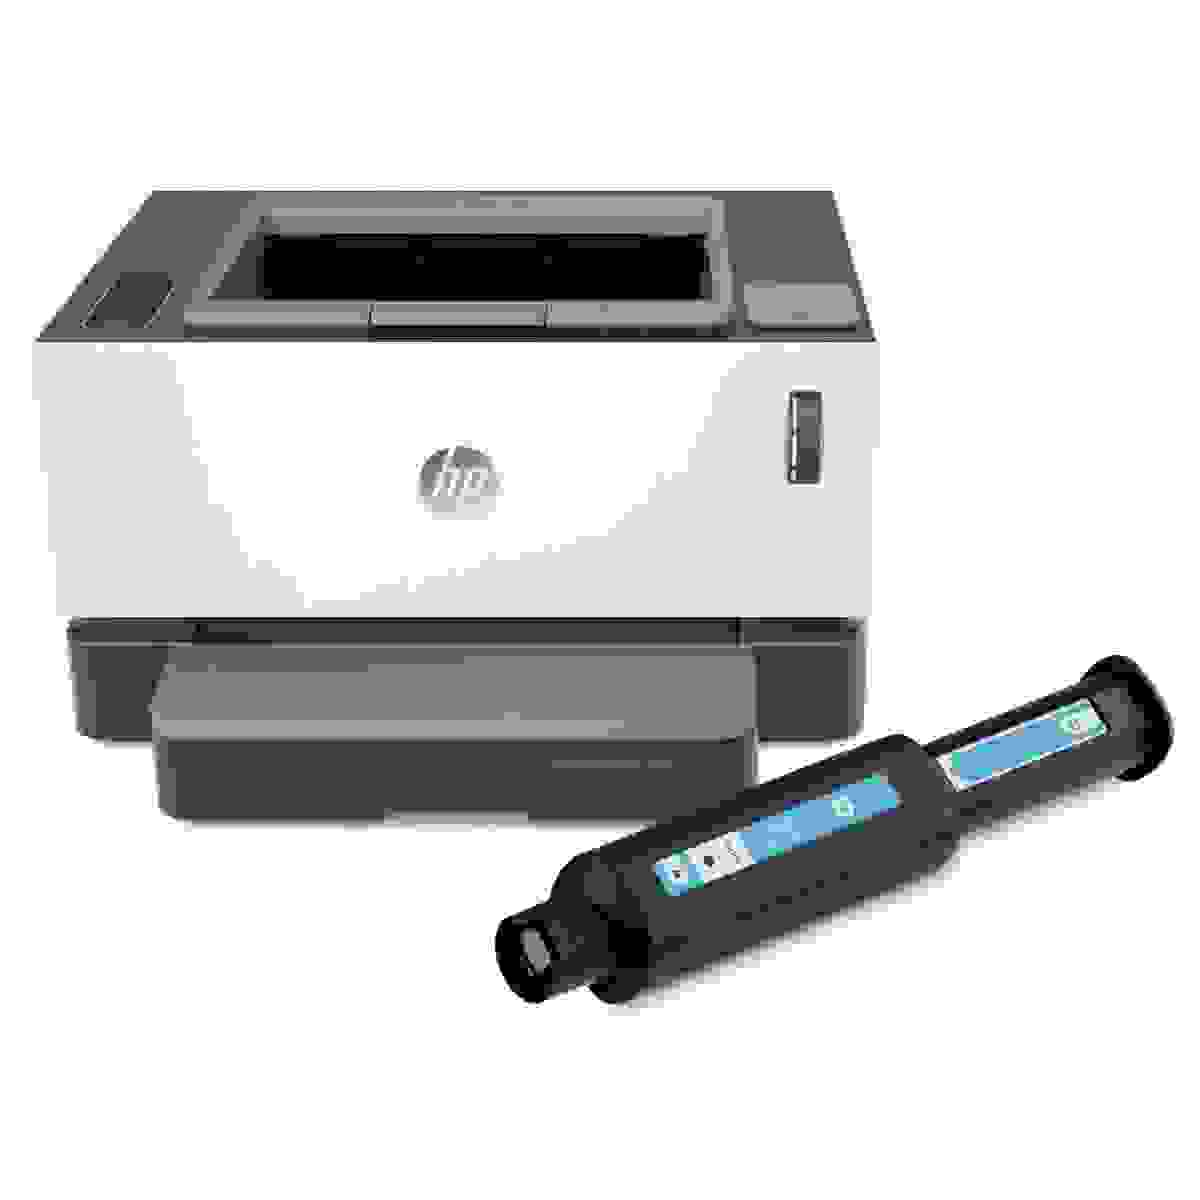 Hp 1000w Printer | HP 1000w Neverstop Printer Price 25 Feb 2021 Hp 1000w Tank Printer online shop - HelpingIndia